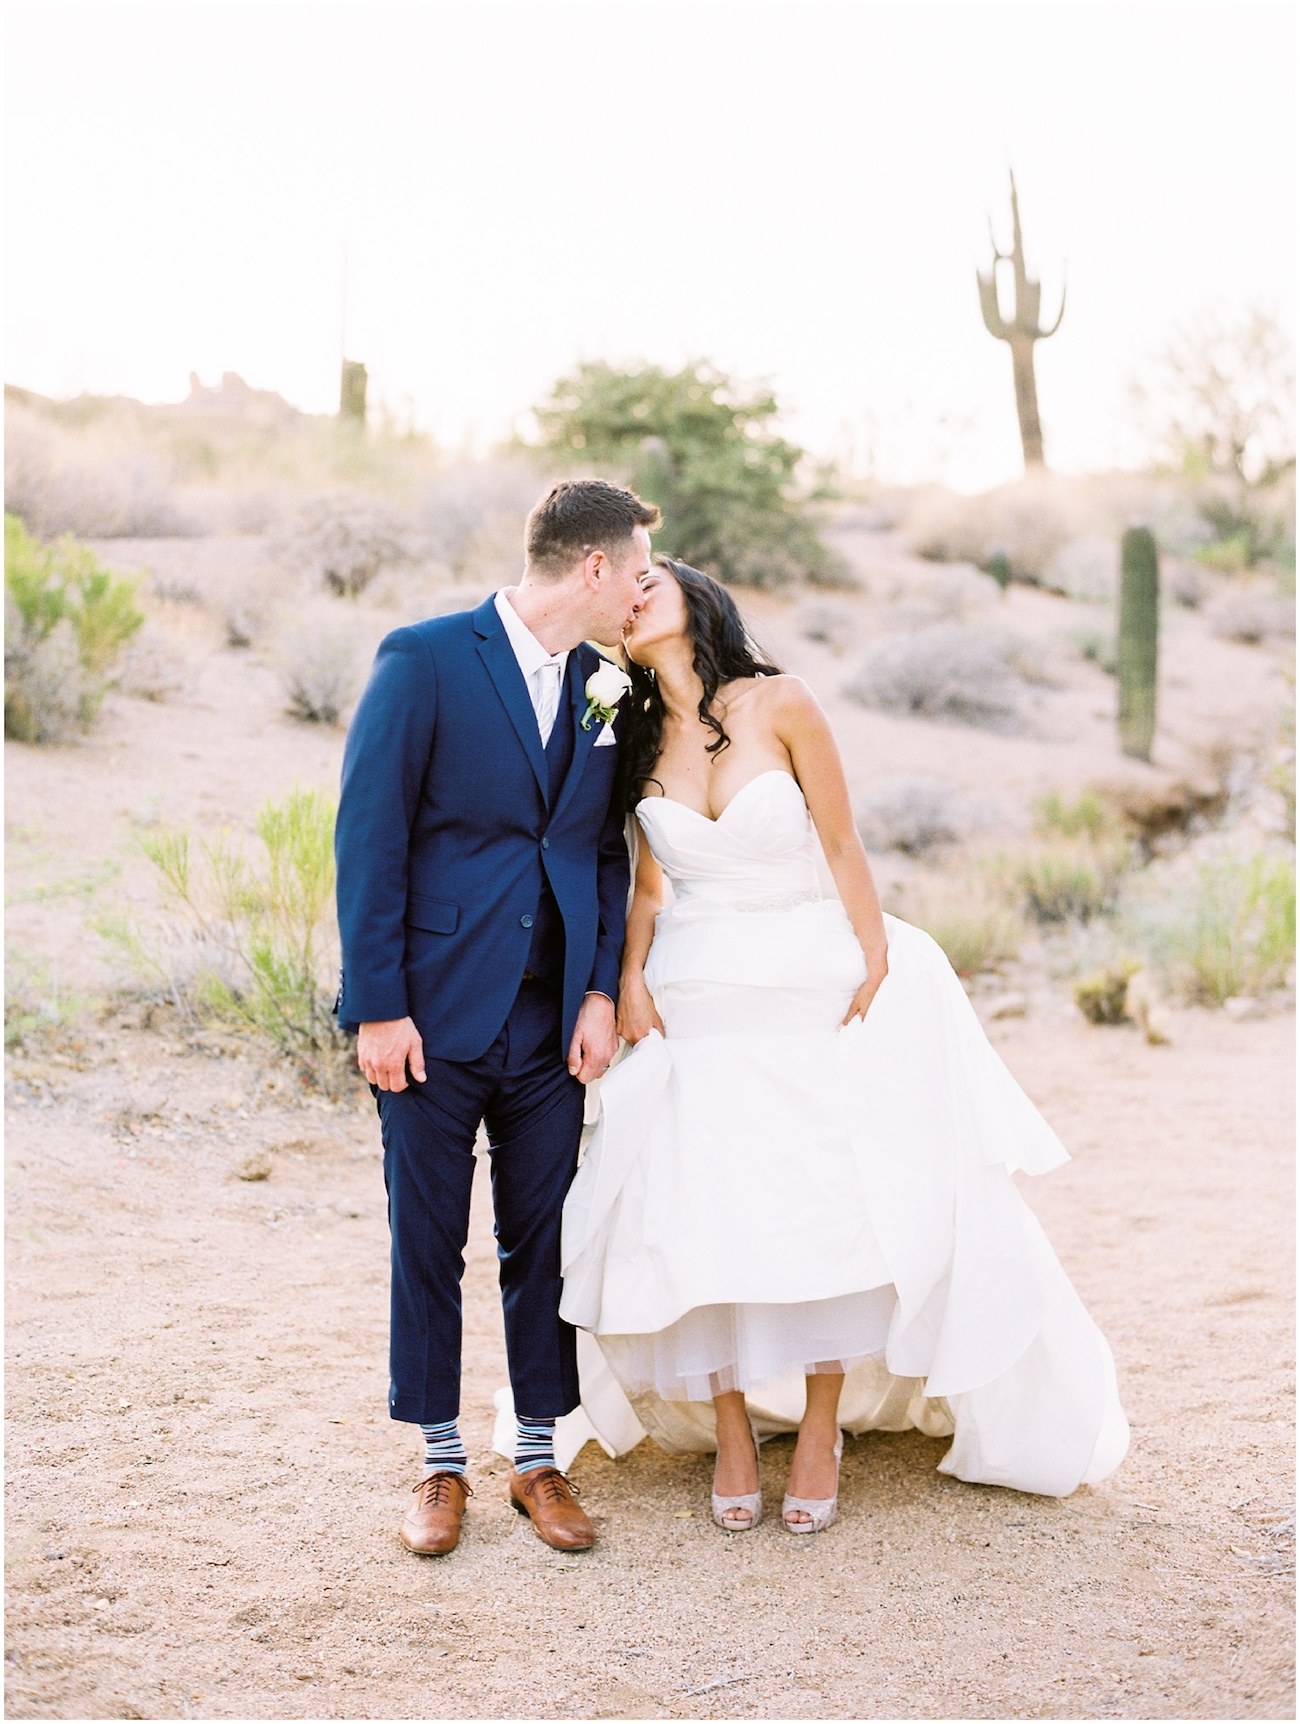 Scottsdale Wedding | Tasha Brady Photography